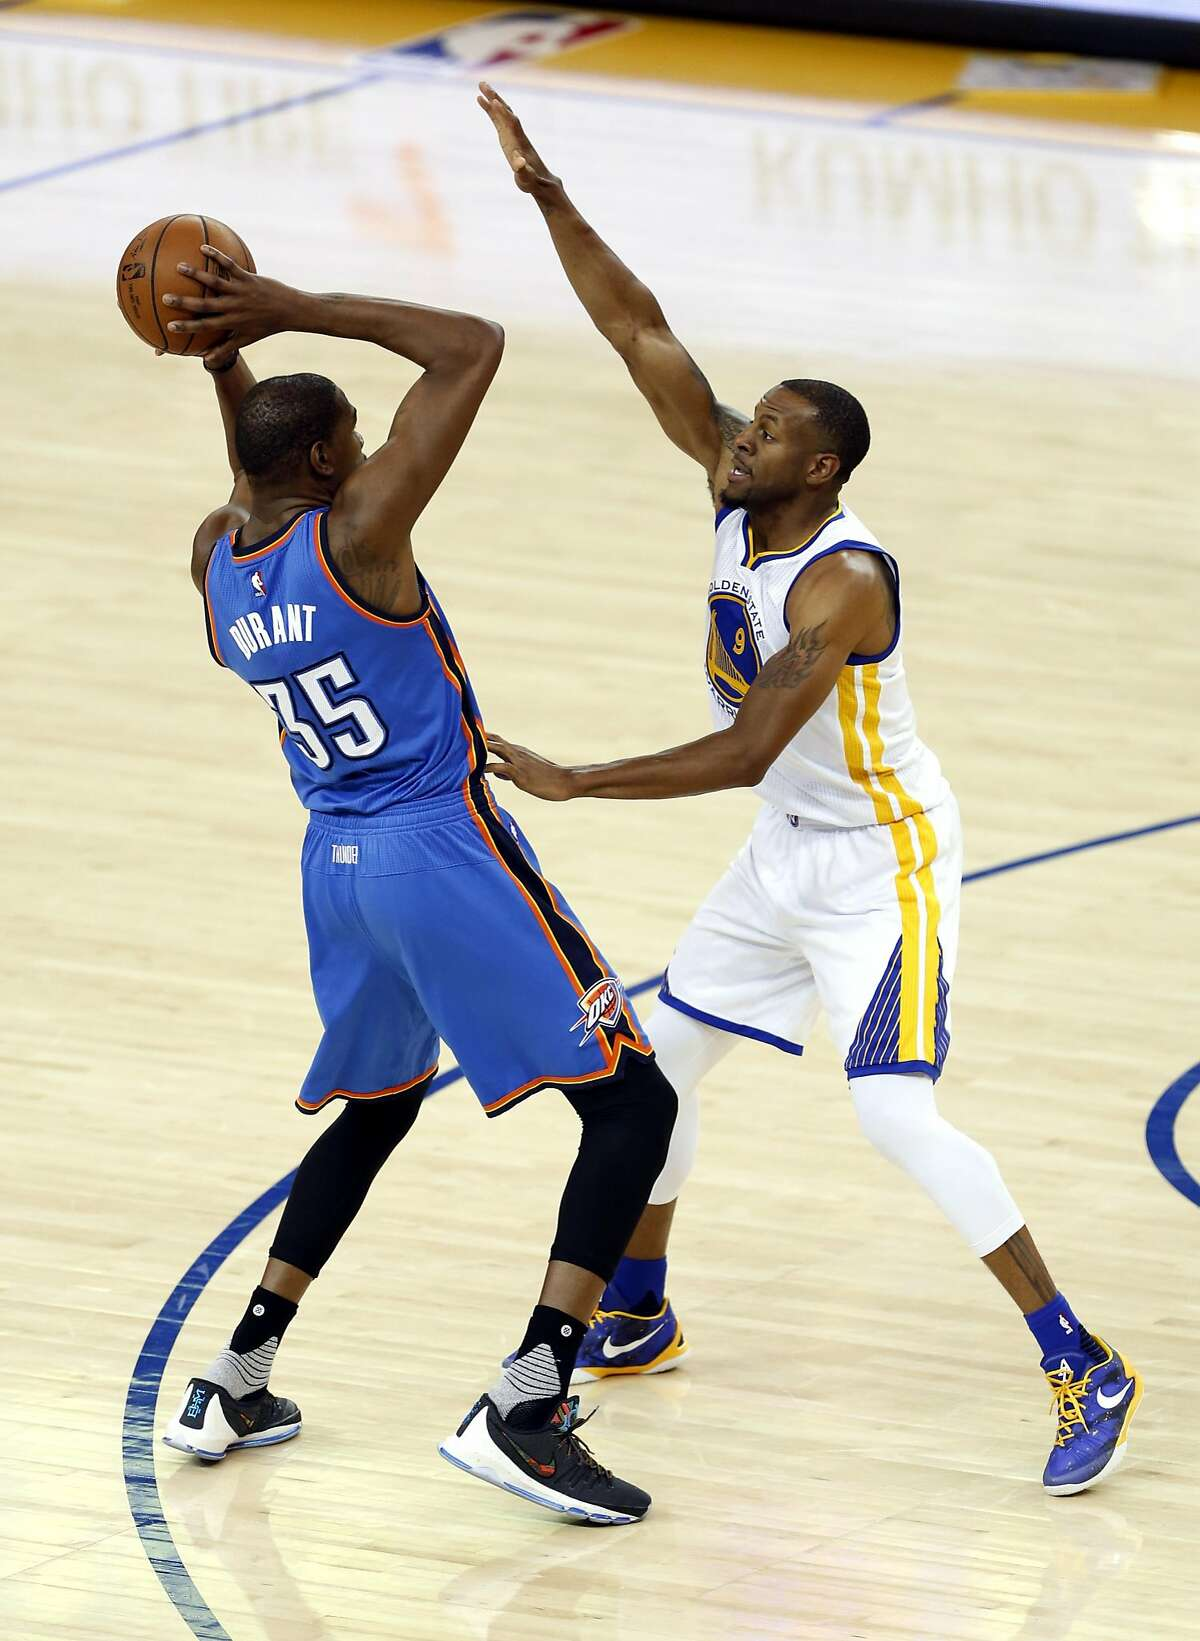 Andre Iguodala guards Kevin Durant during a game between the Golden State Warriors and the Oklahoma City Thunder in Oakland, California, on Thursday, March 3, 2016.